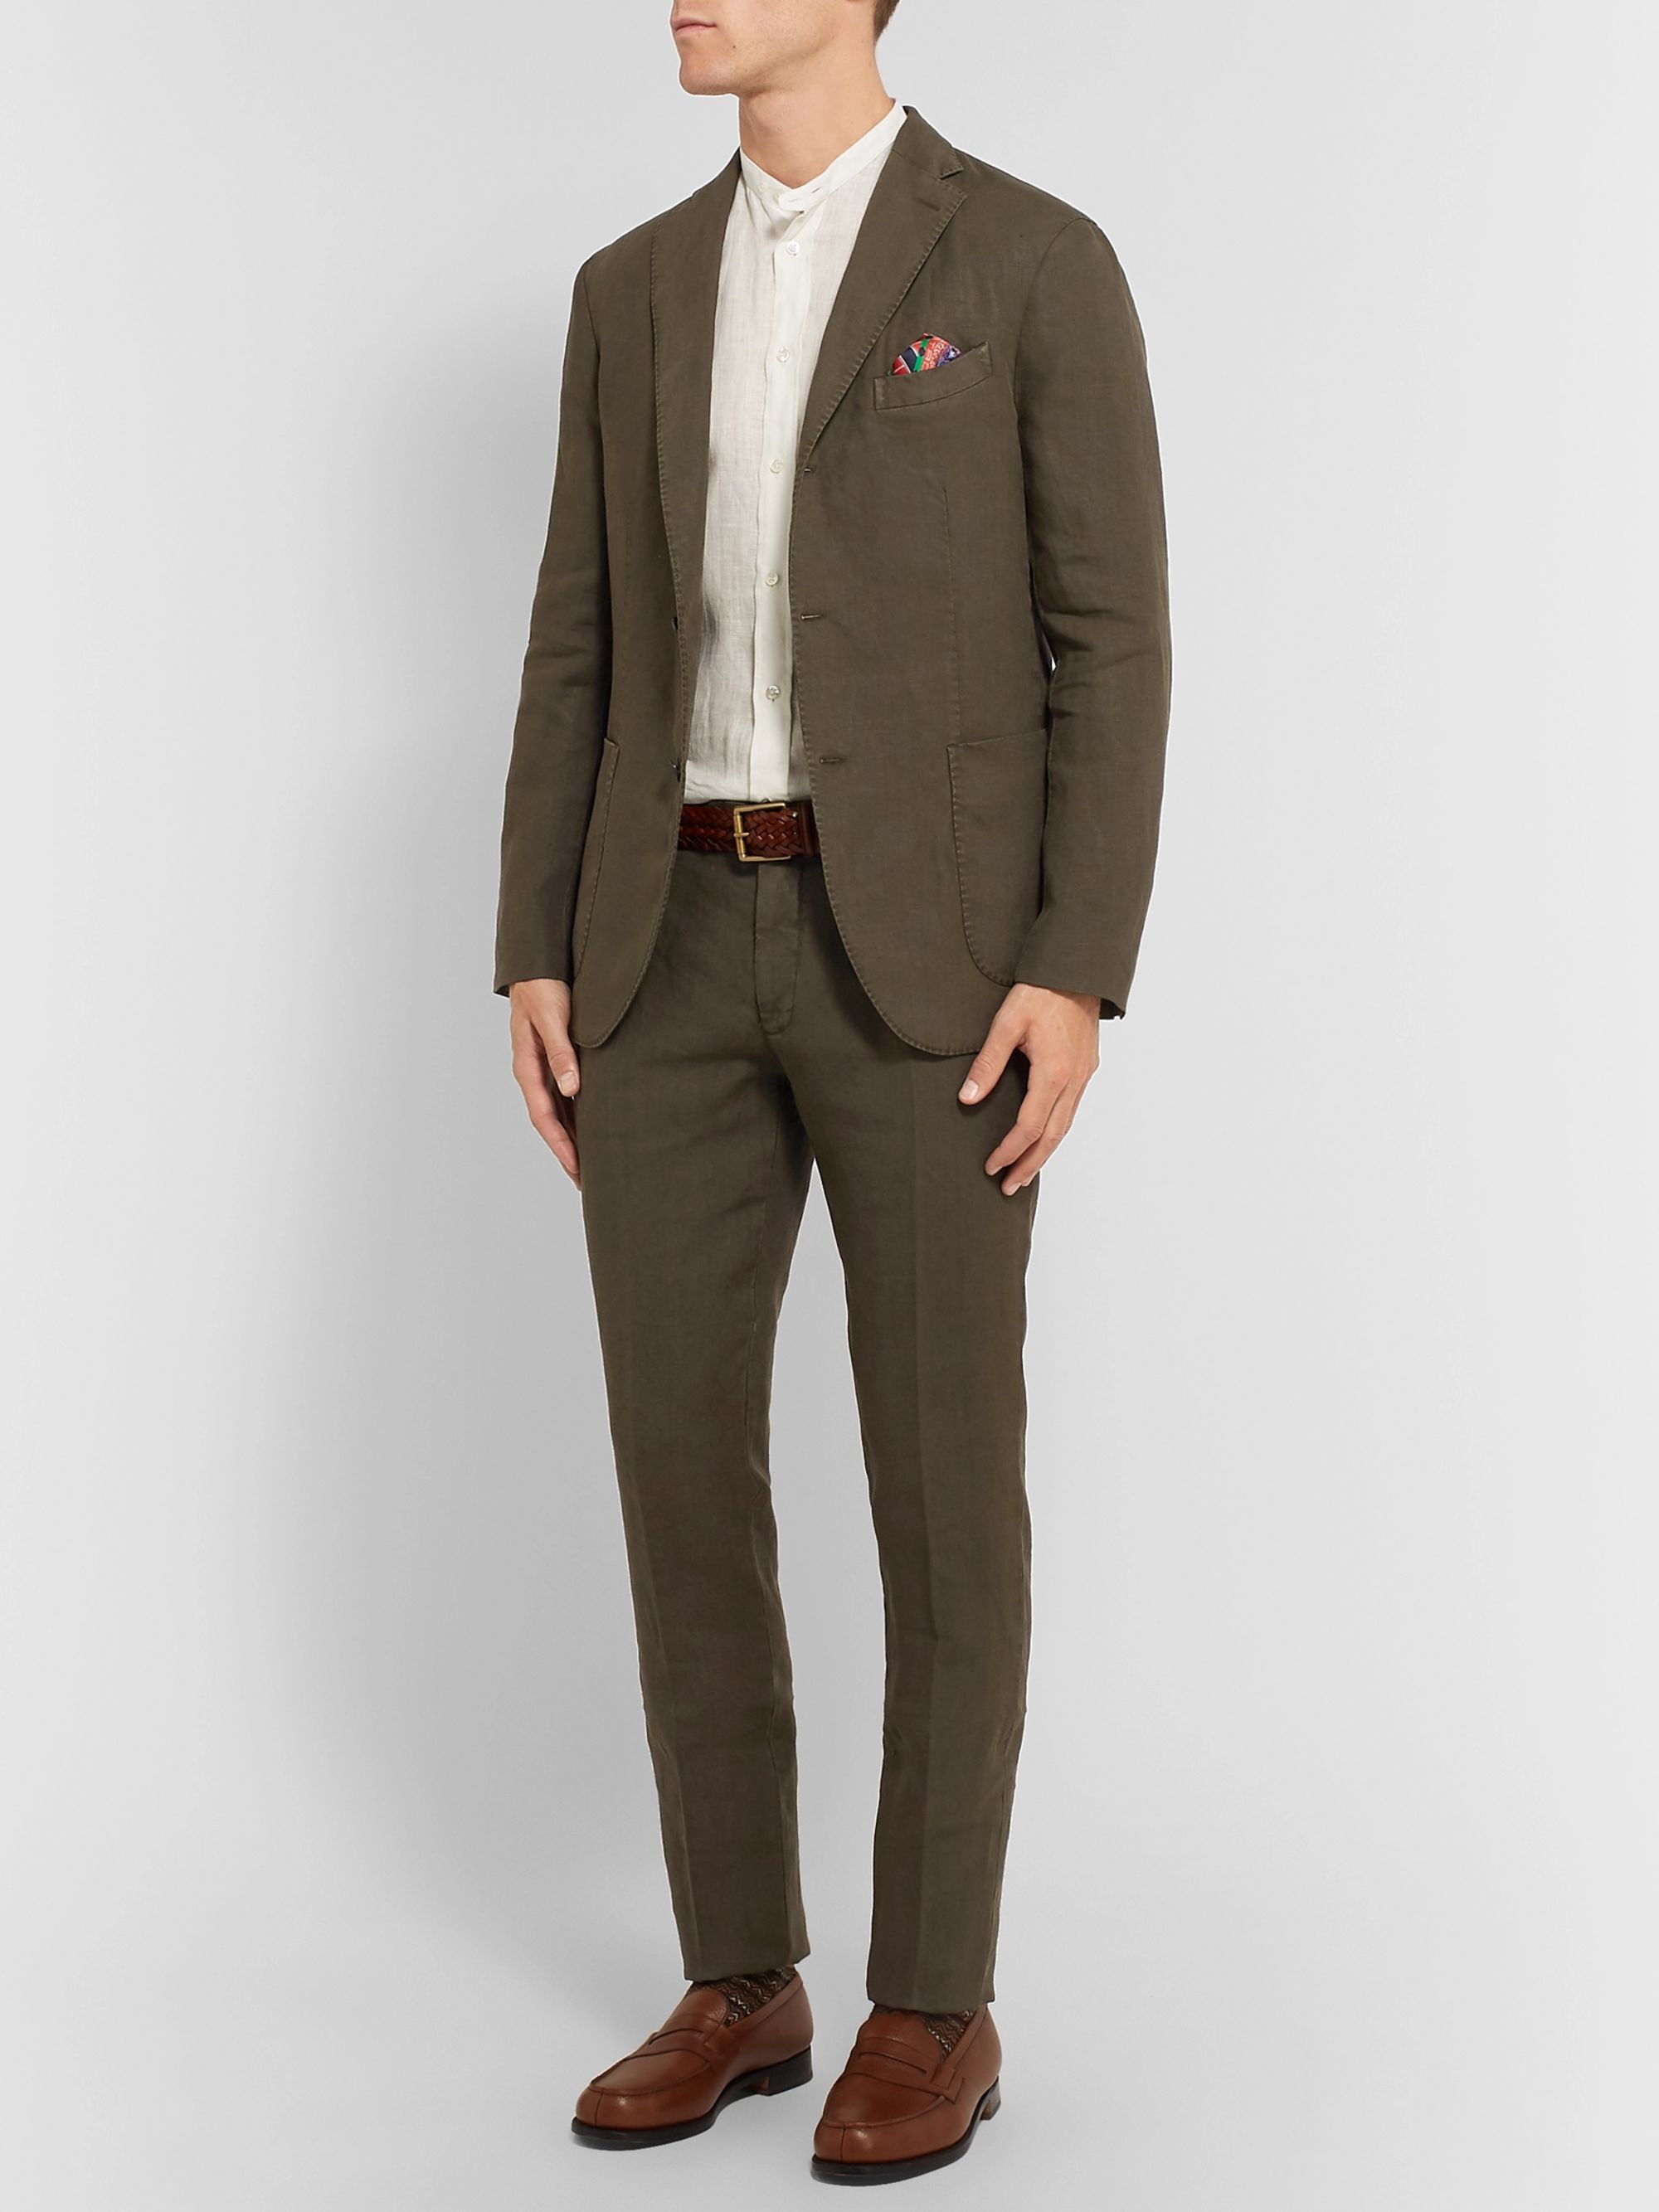 Boglioli Cream K-Jacket Slim-Fit Unstructured Linen Suit Jacket